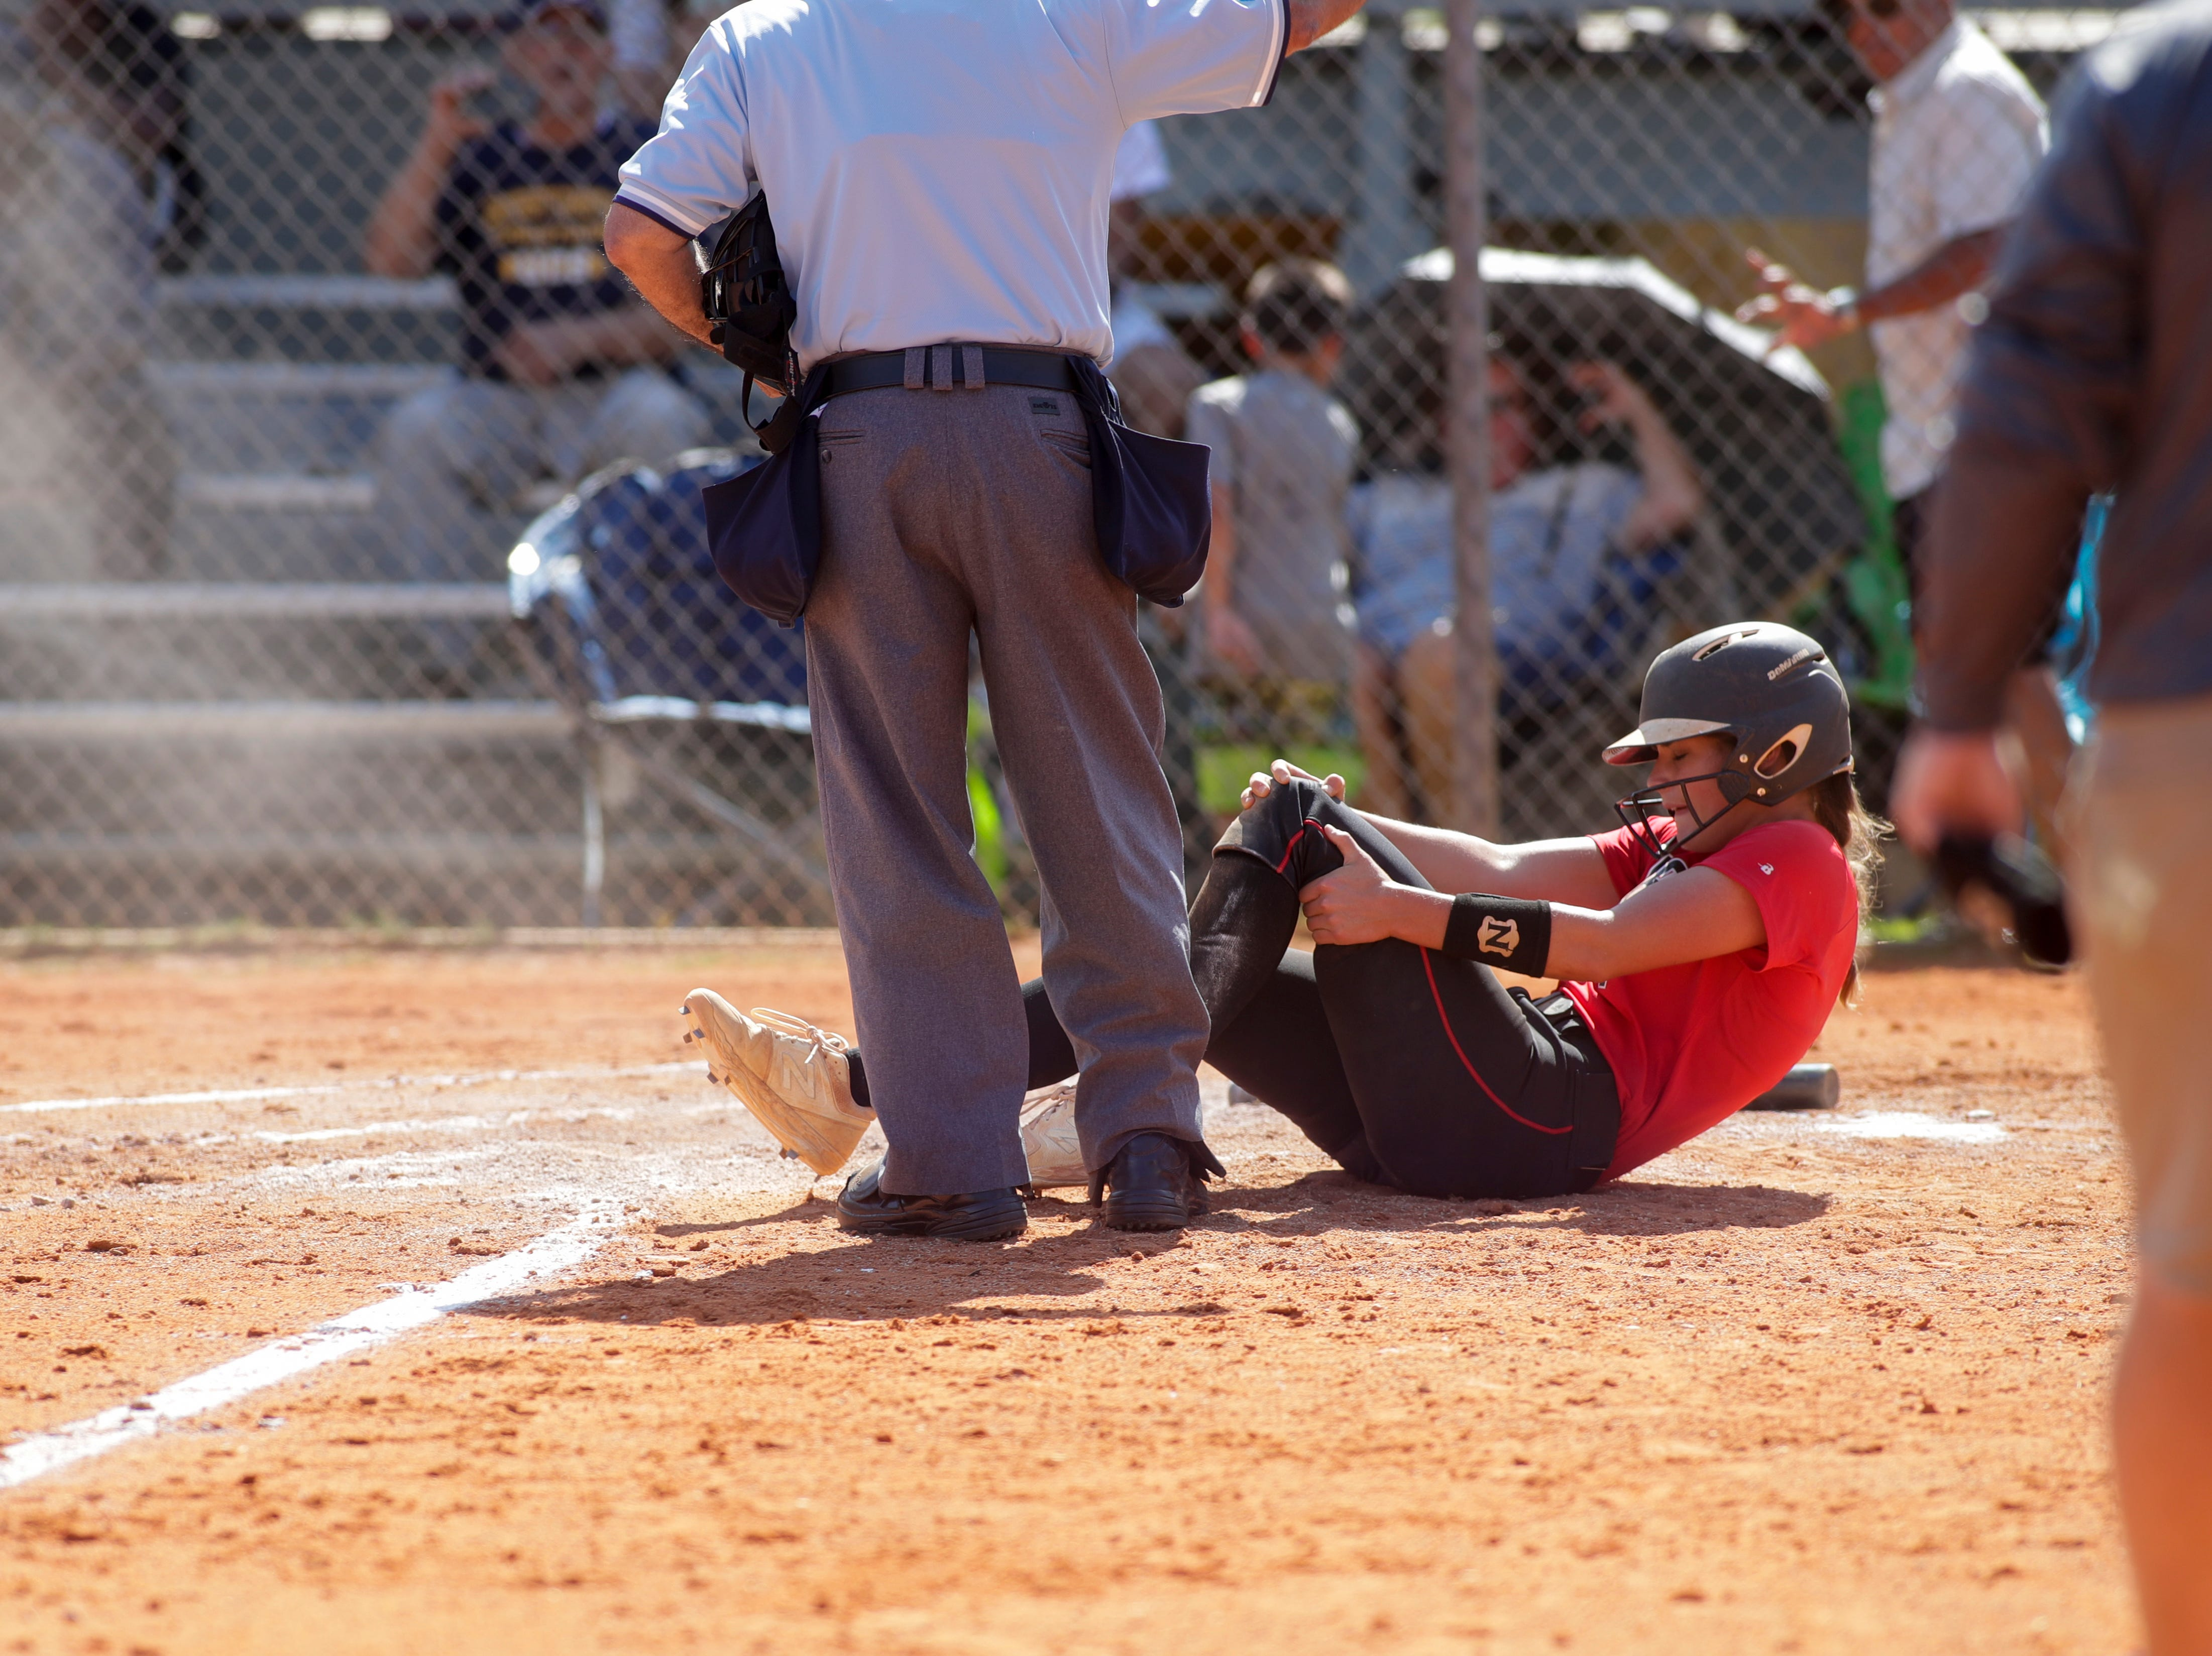 North Florida Christian's Chloe Culp (1) goes down after being knocked over by the catcher as she got to home plate during the 1-3A regional final game between NFC and University Christian at NFC Tuesday, May 14, 2019. UC defeated NFC 16 to 11 to advance to the state tournament.